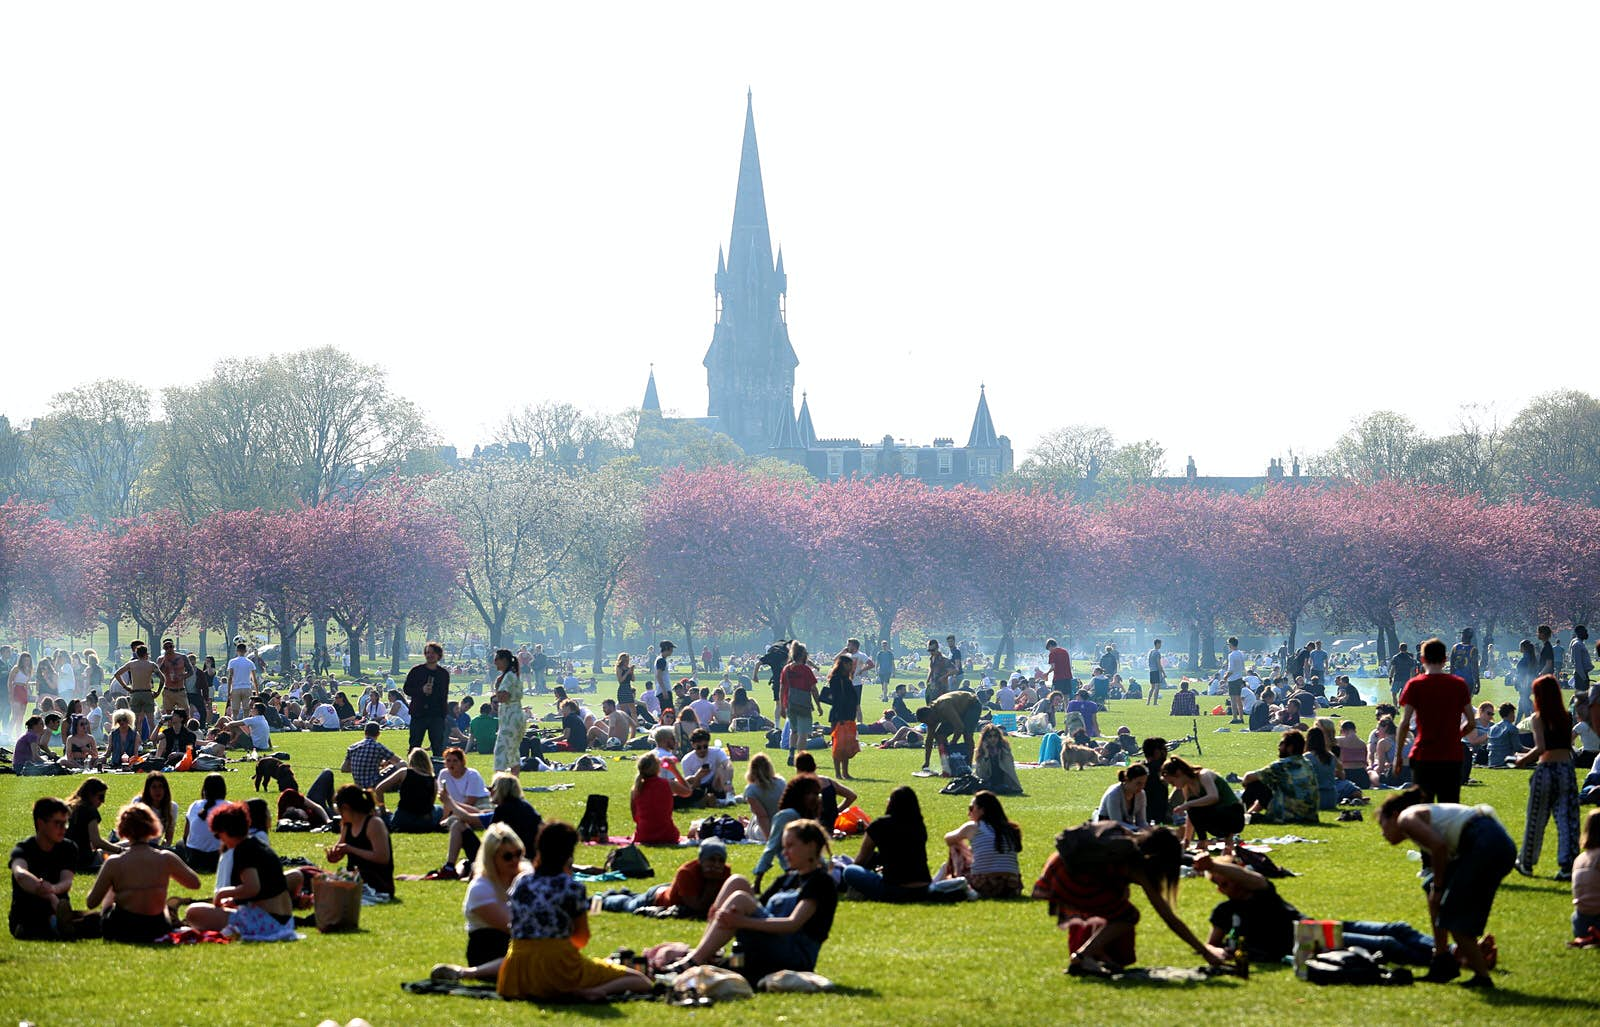 People enjoy the sunshine in The Meadows, Edinburgh. There is smoke from barbecues dotted around the park, there are cherry blossom trees blooming in the background and lots of people sitting on the grass in groups. A church steeple is visible in the background.